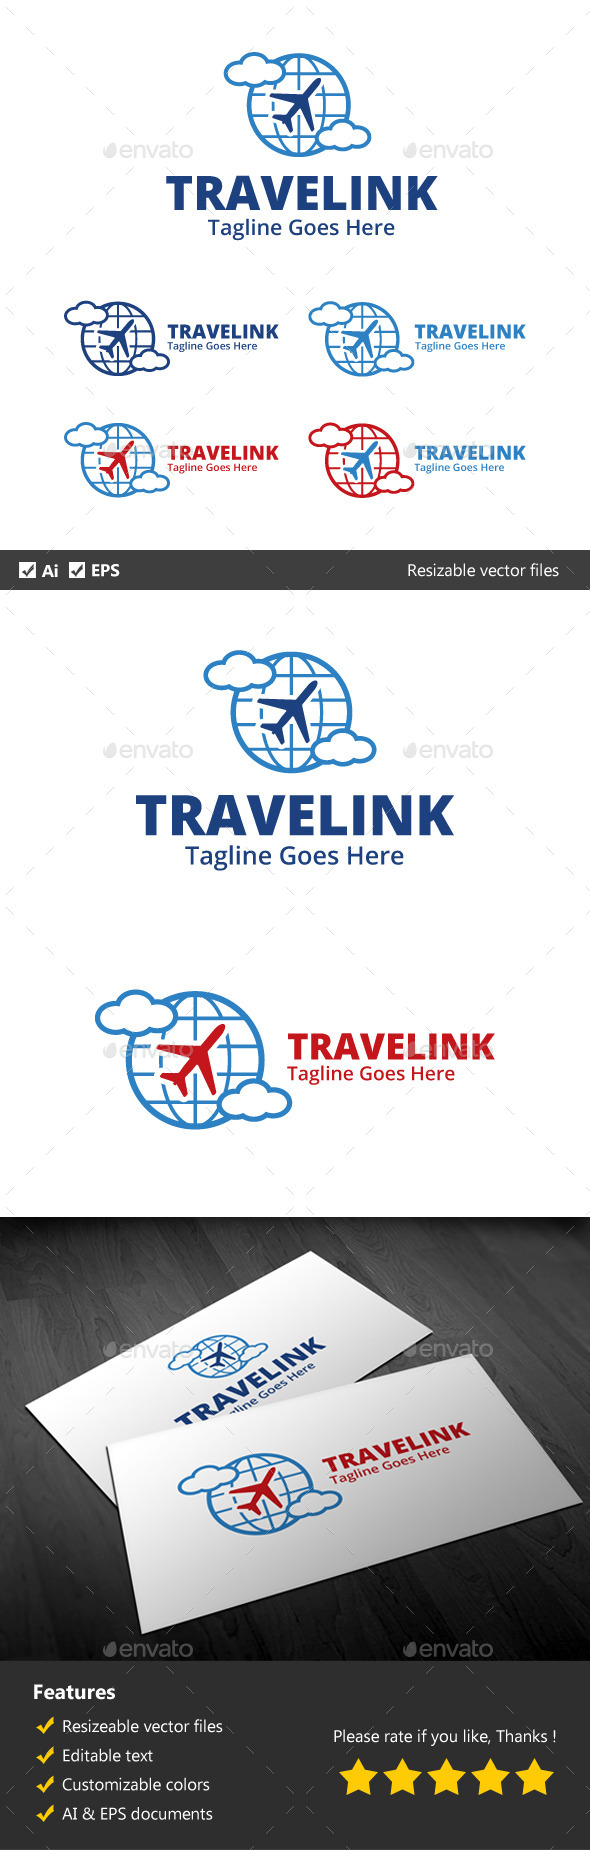 Travel Link - Objects Logo Templates